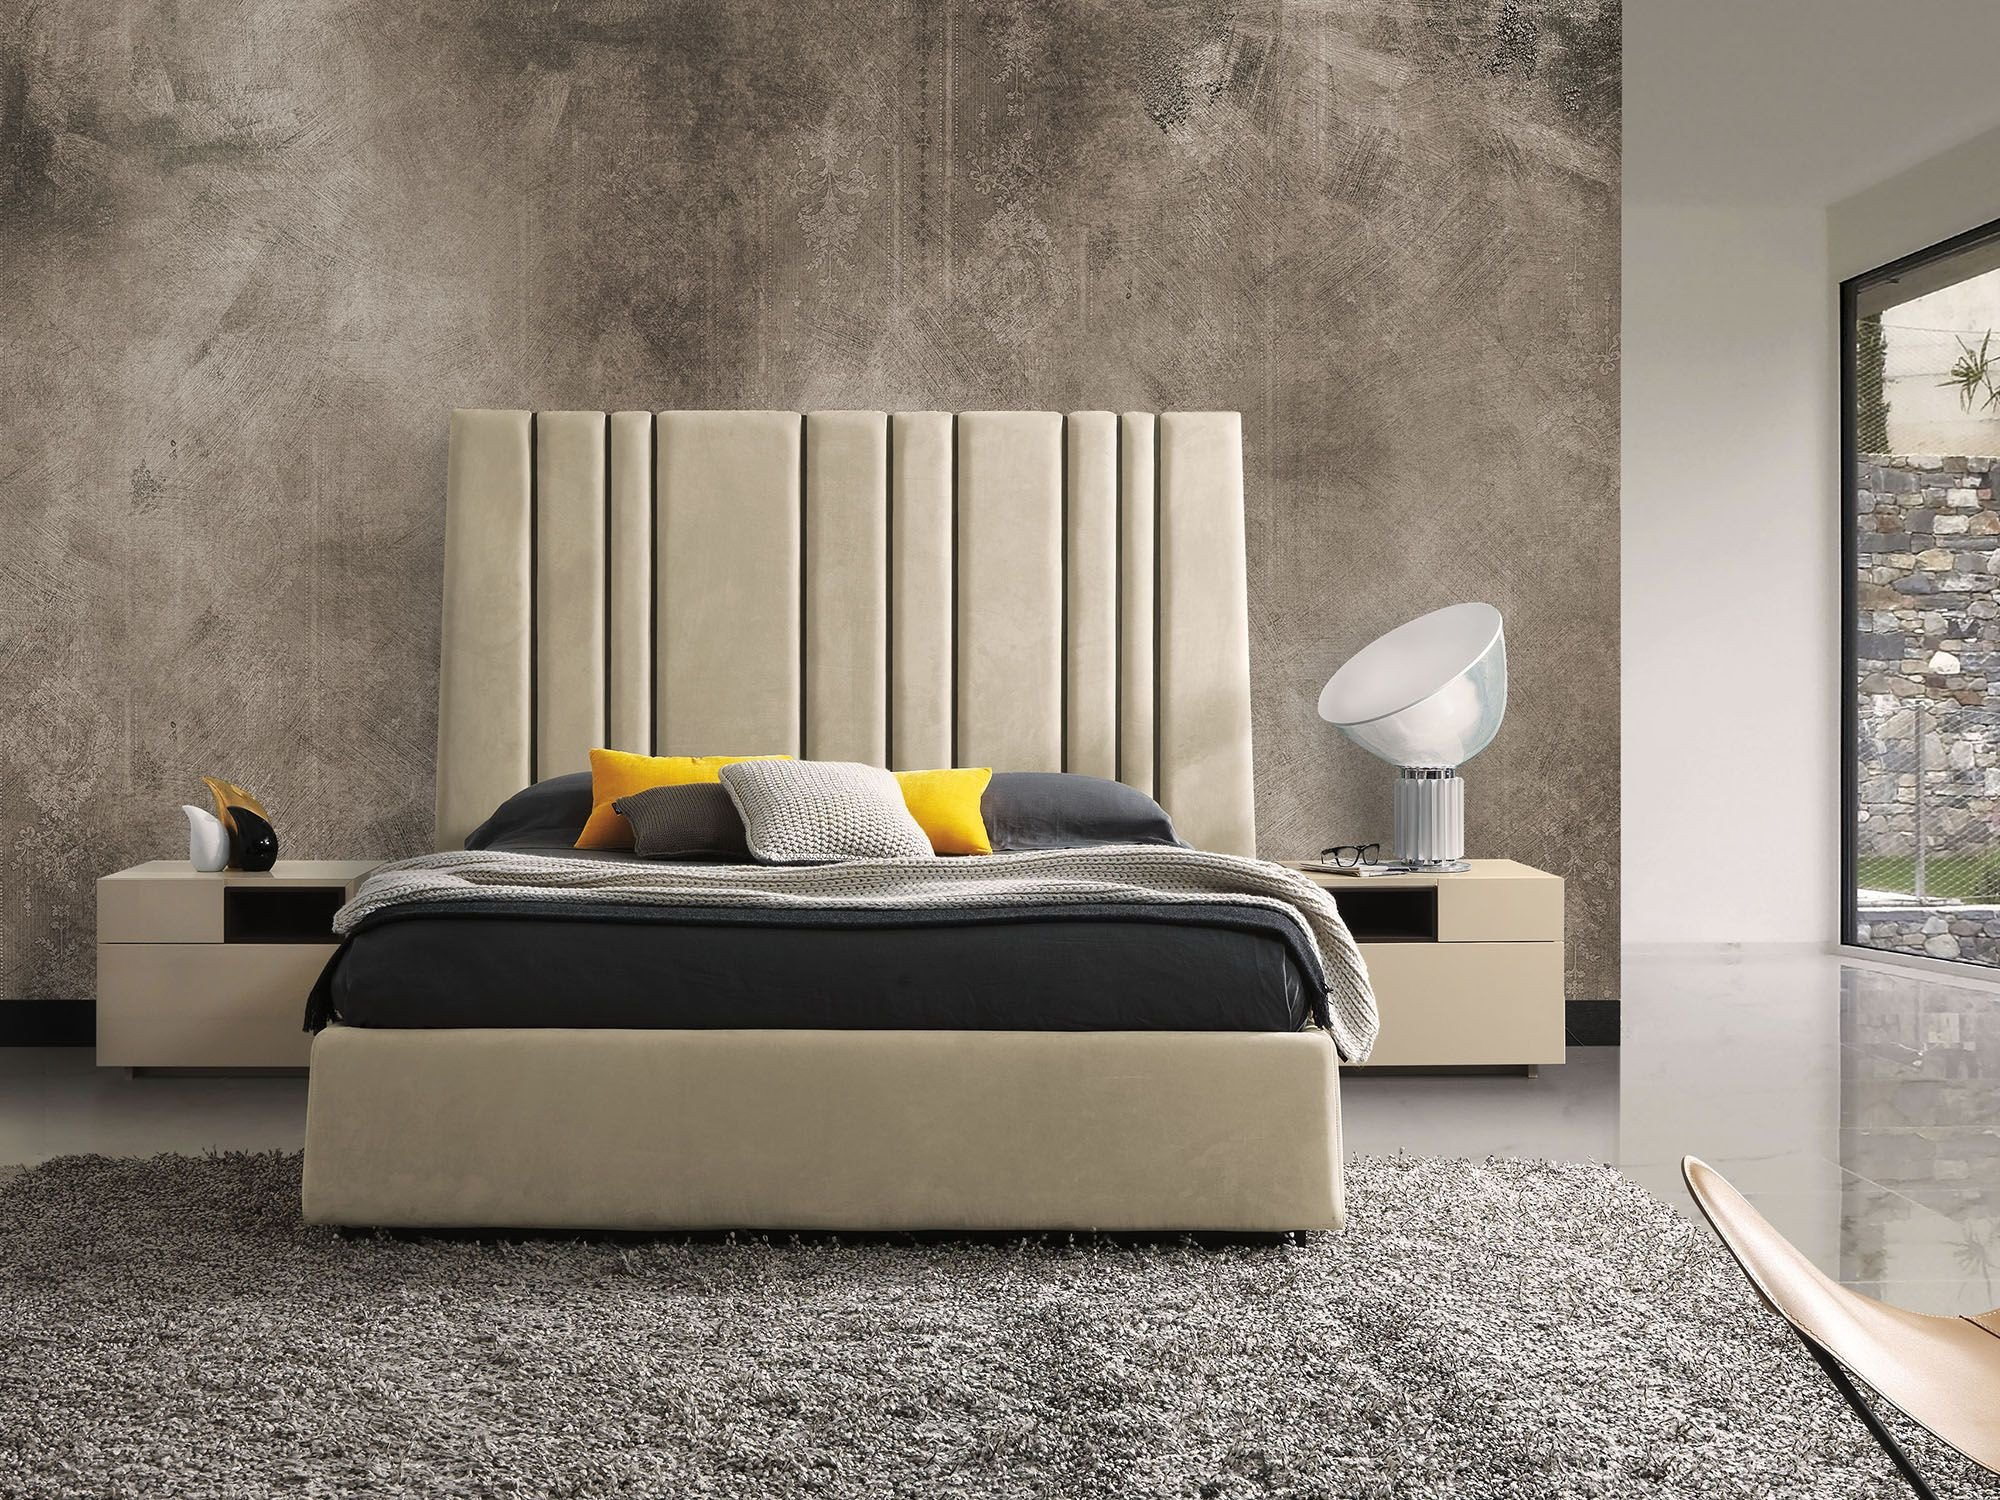 Italian Modern Bedroom Furniture Inspirational Modern Bedroom Design Idea Discover Our Selection Of Made